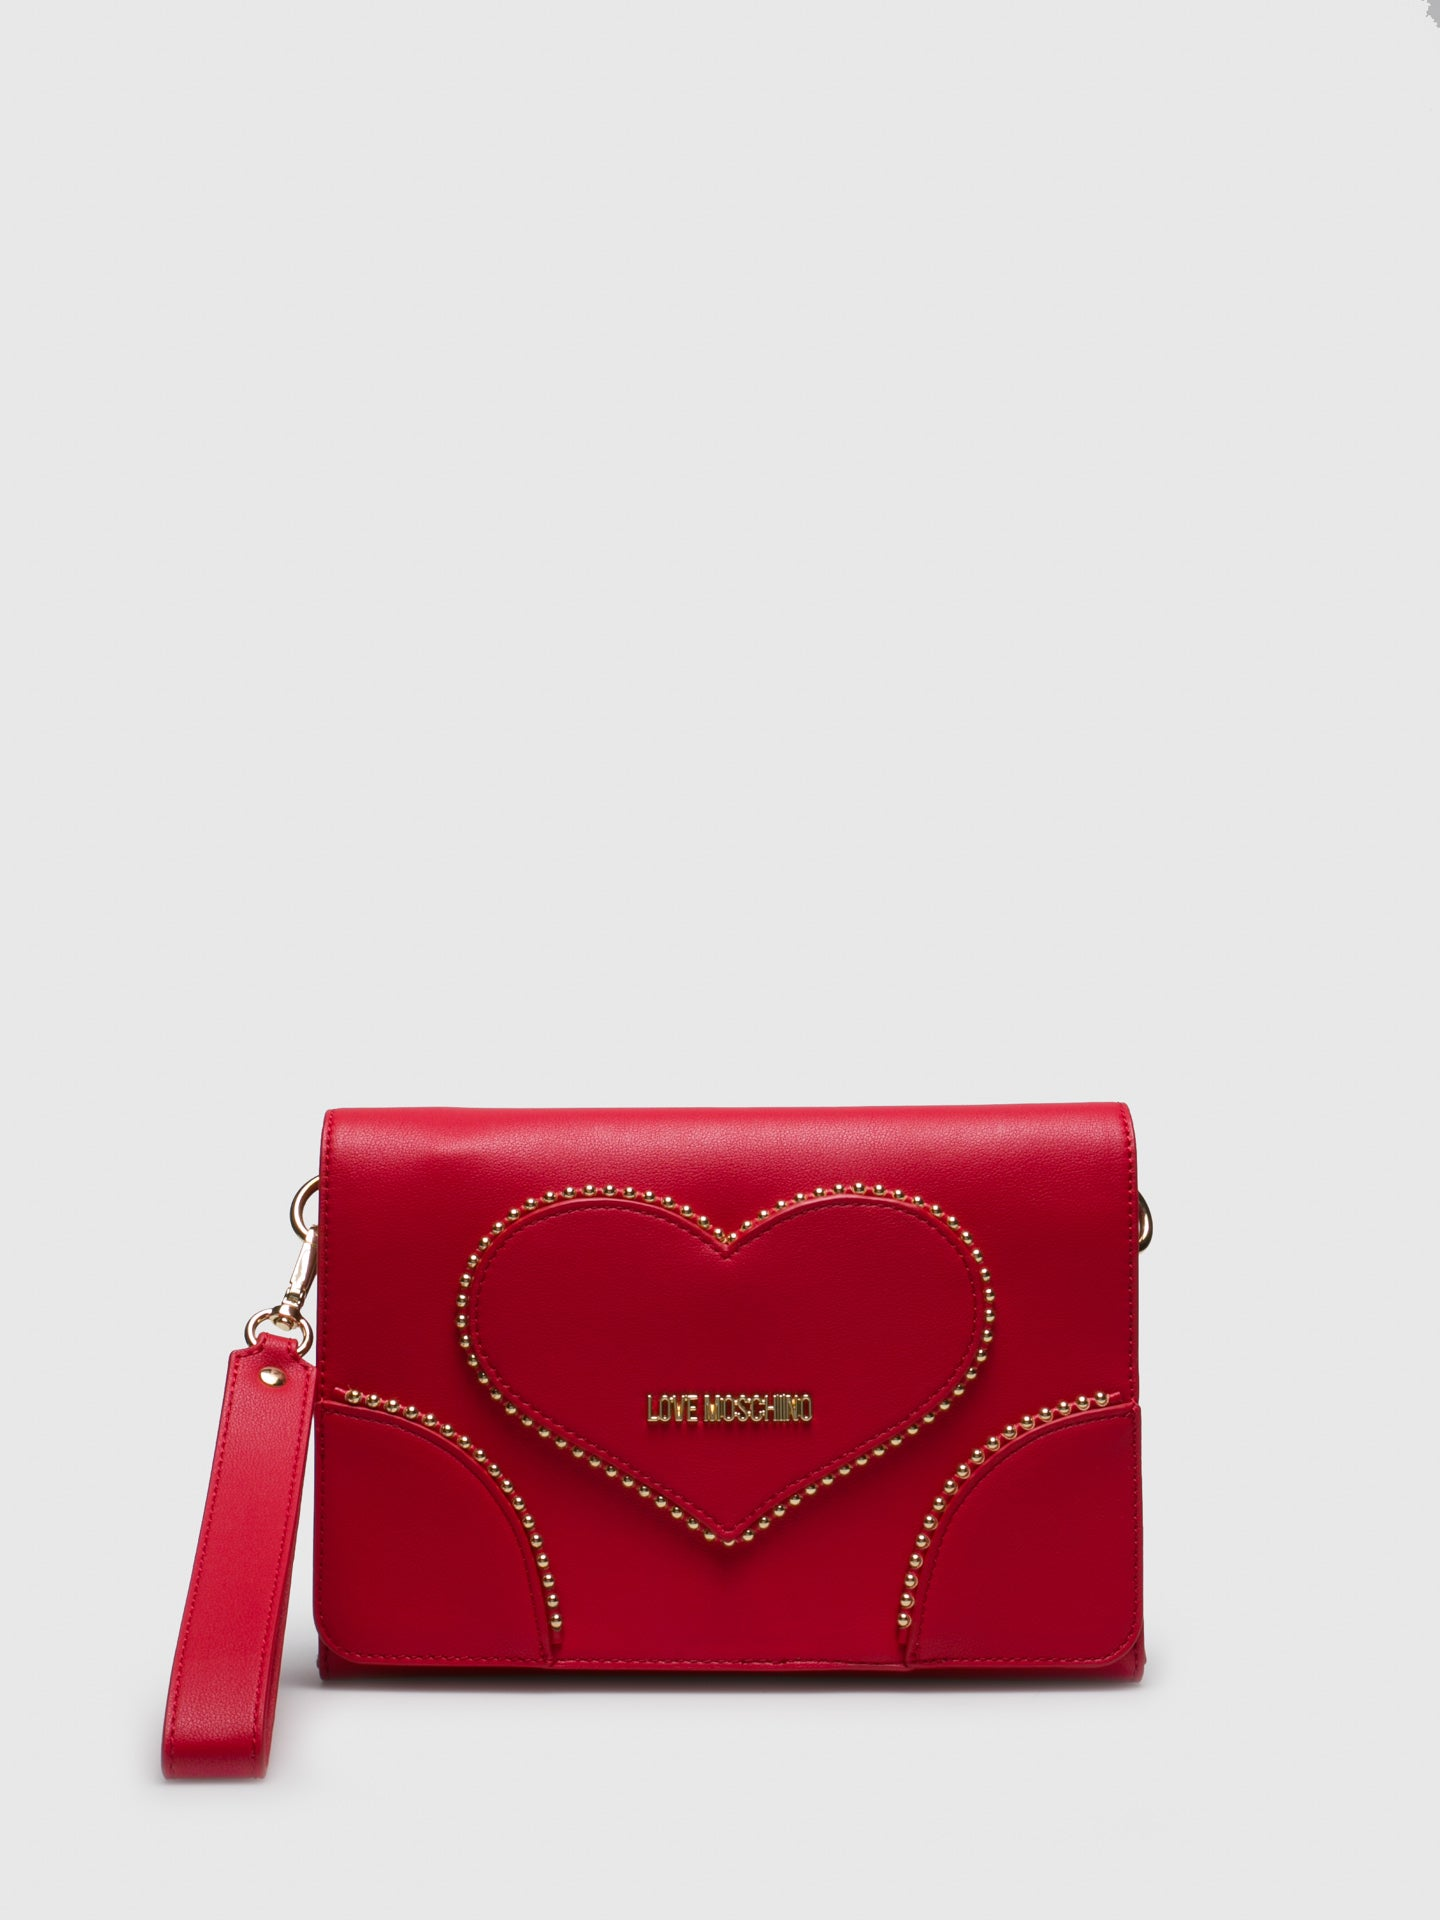 LOVE MOSCHINO Clutch in Rouge